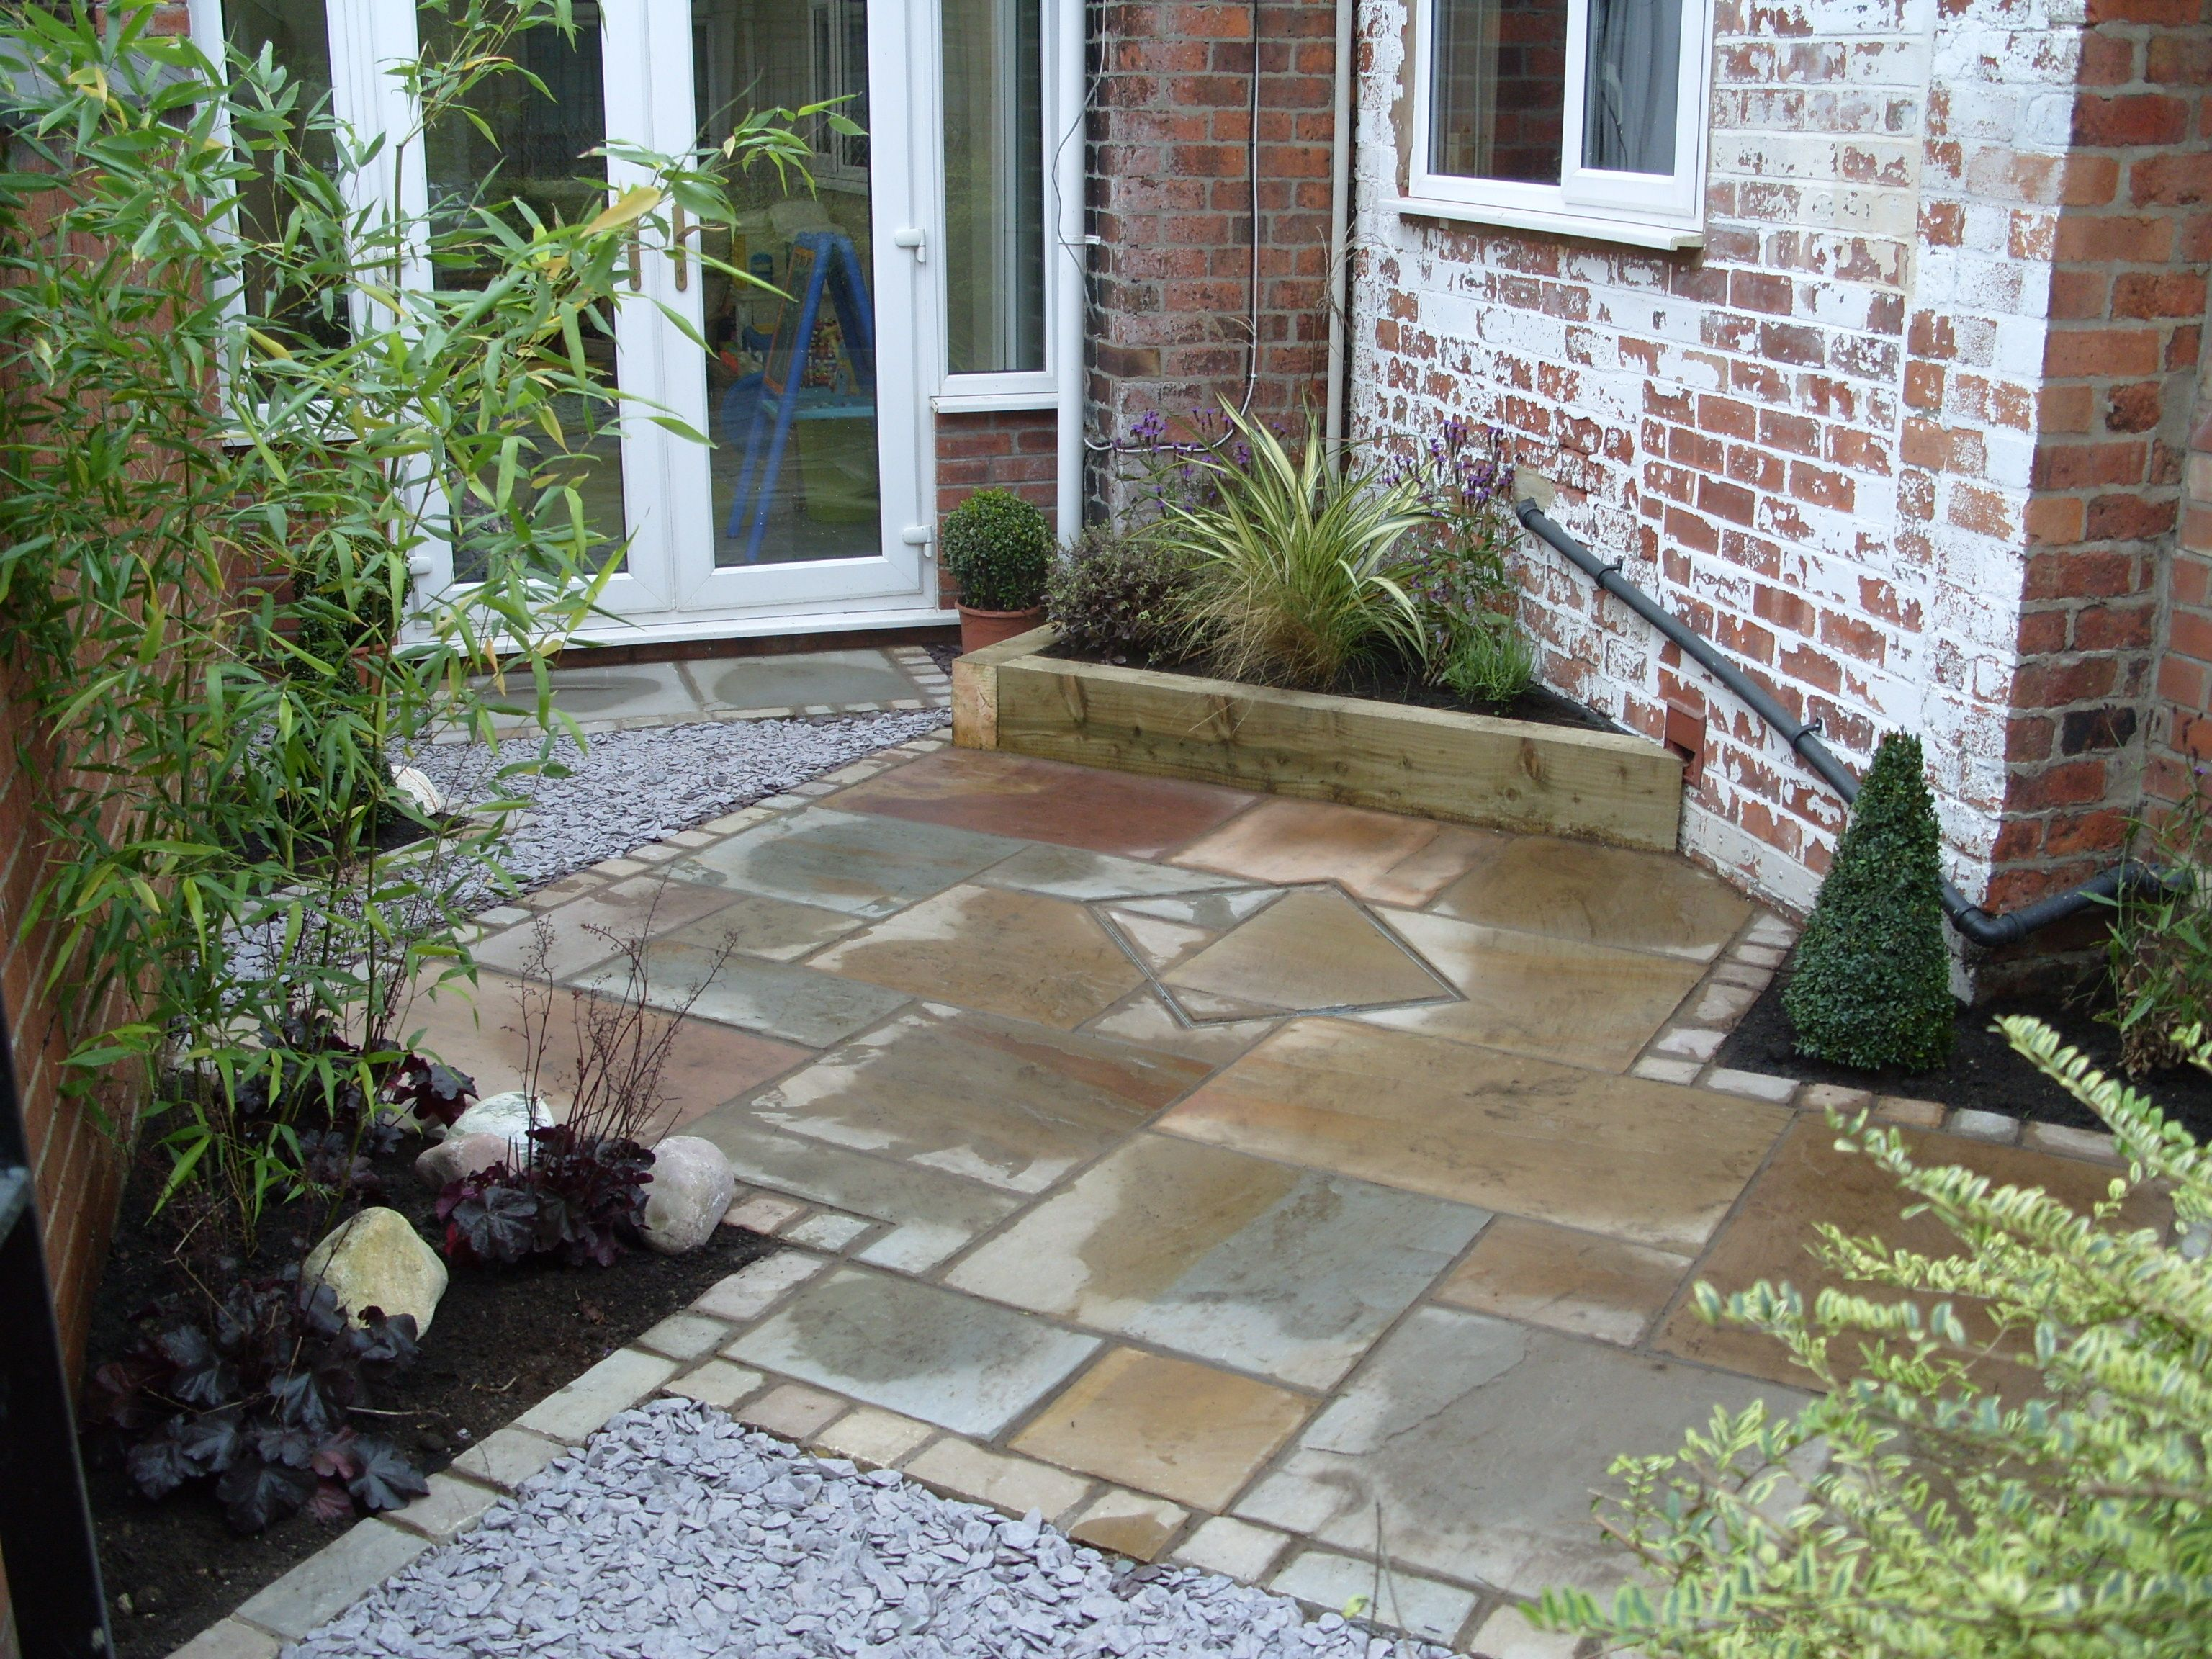 Courtyard garden ideas courtyards angie barker trading as for Courtyard landscaping ideas